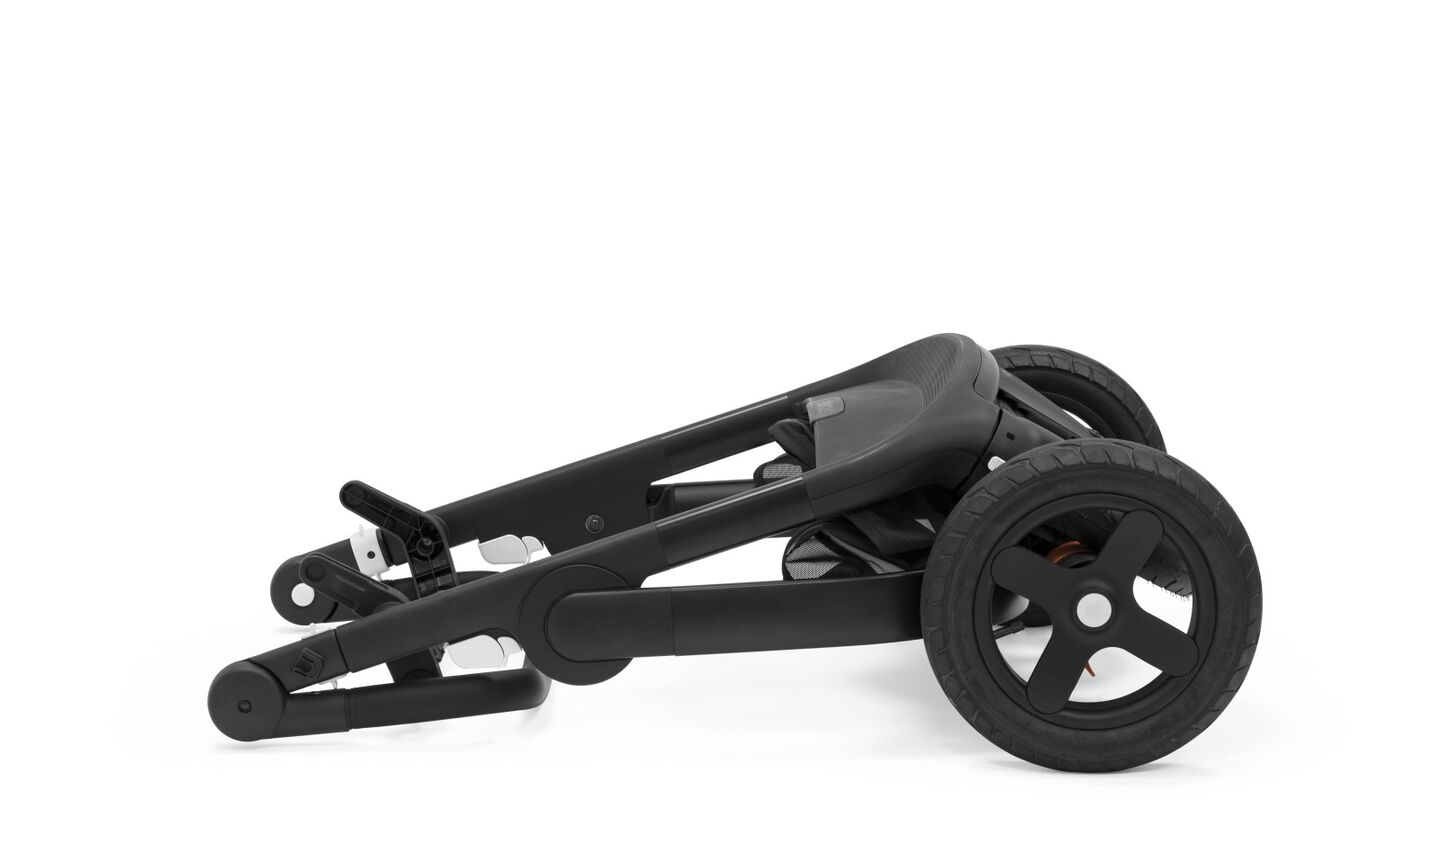 Stokke® Trailz™ Chassis Black with Black Leatherette Handle. Stokke® Stroller Seat, Black Melange.